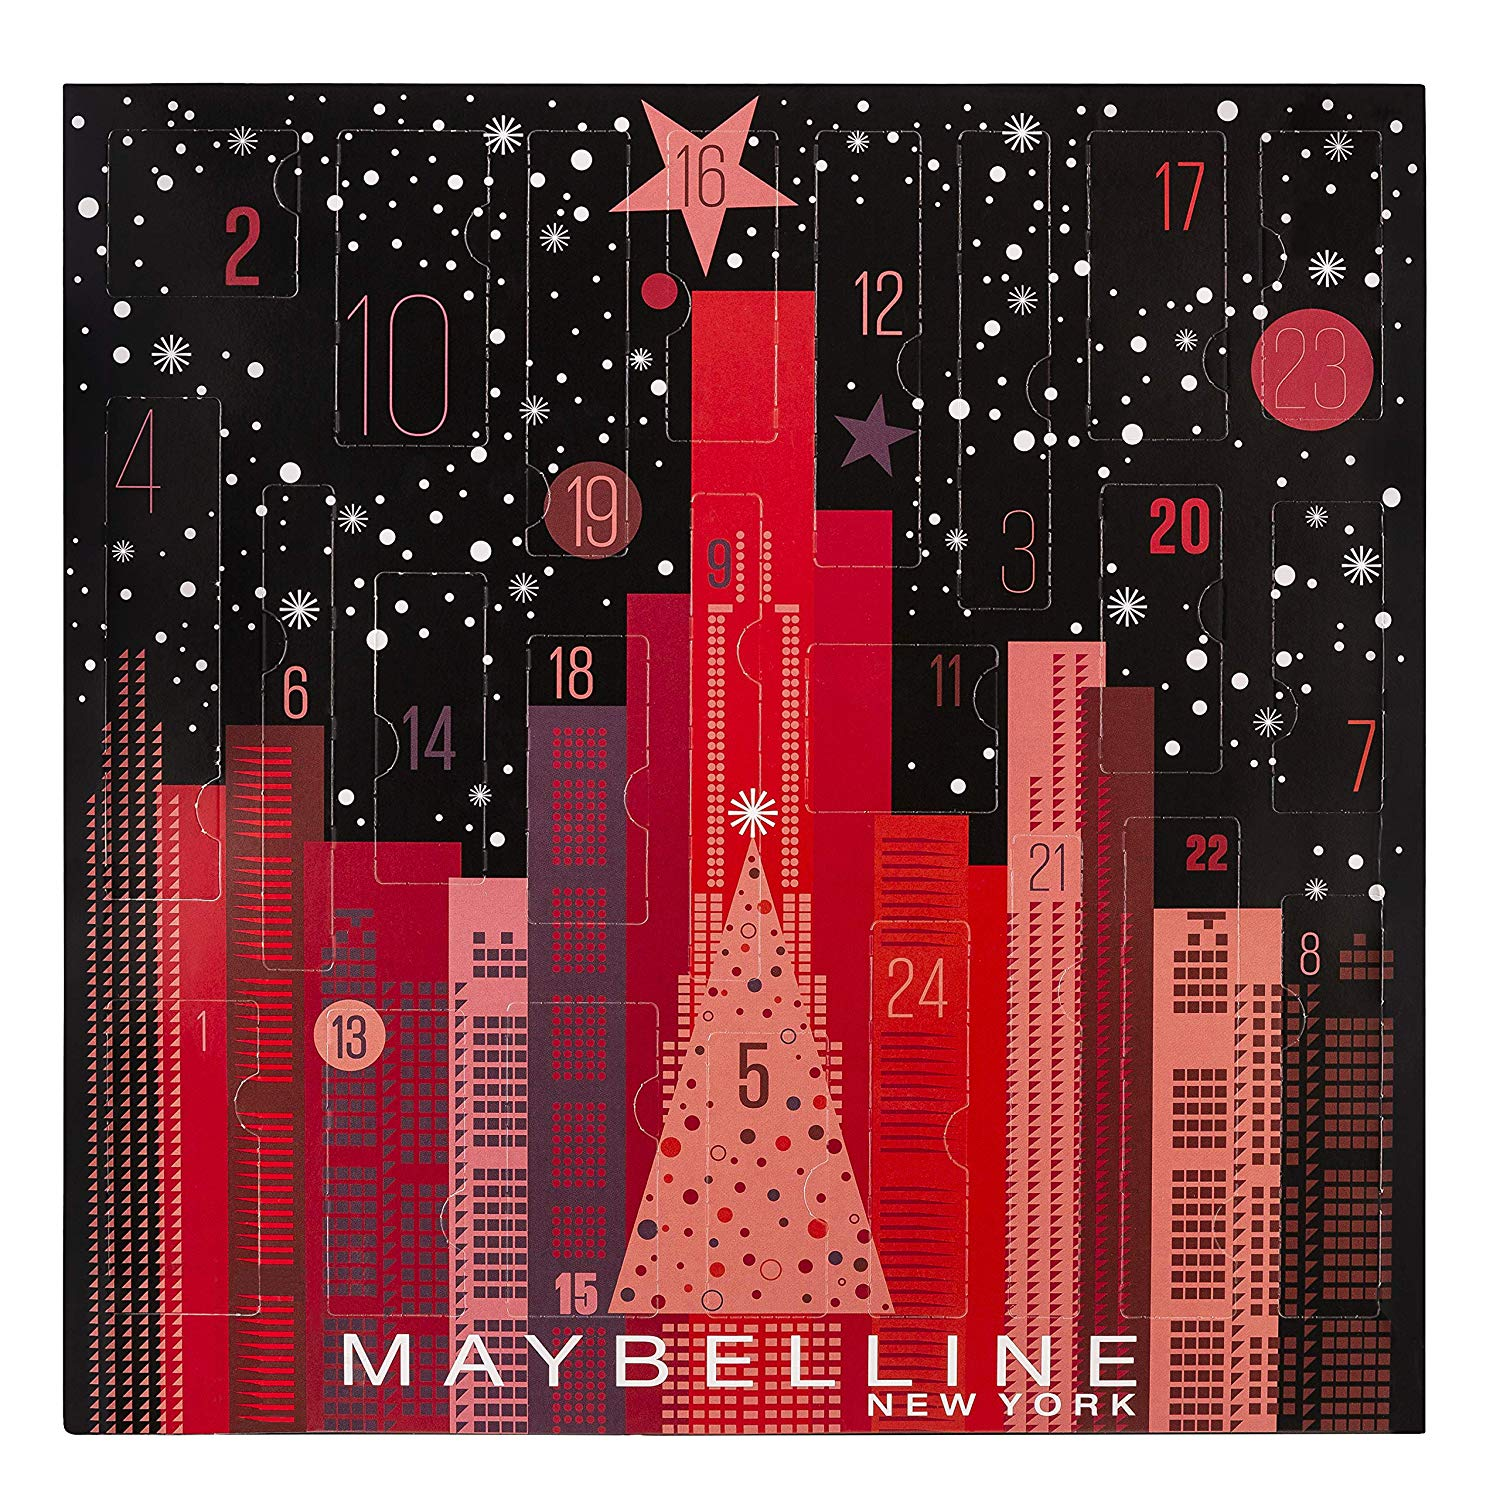 Maybelline New York Beauty-Adventskalender  - Bild 2